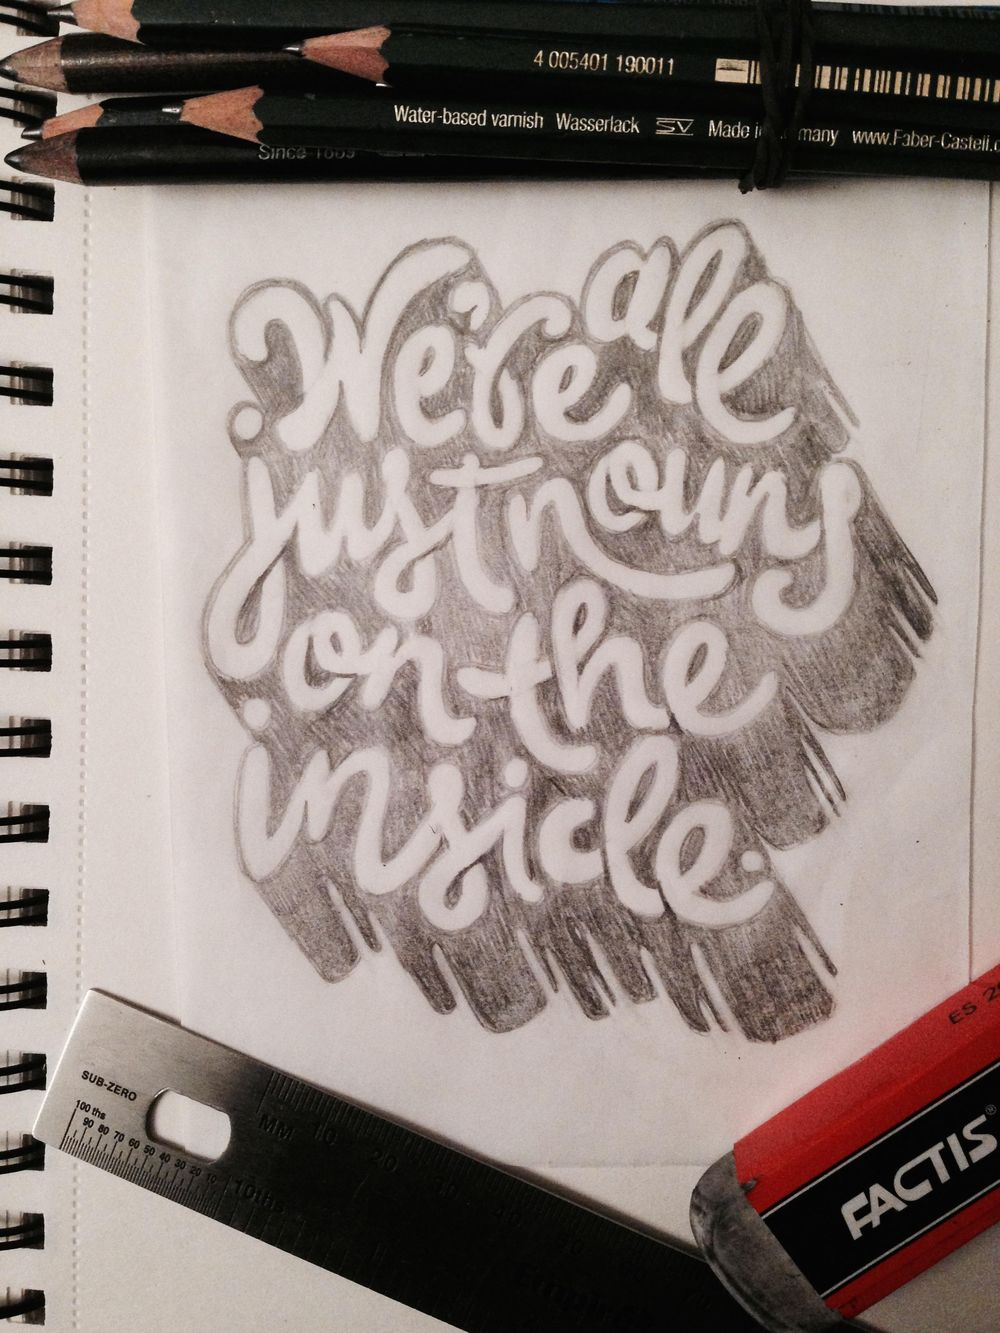 We're all just nouns on the inside. - image 8 - student project